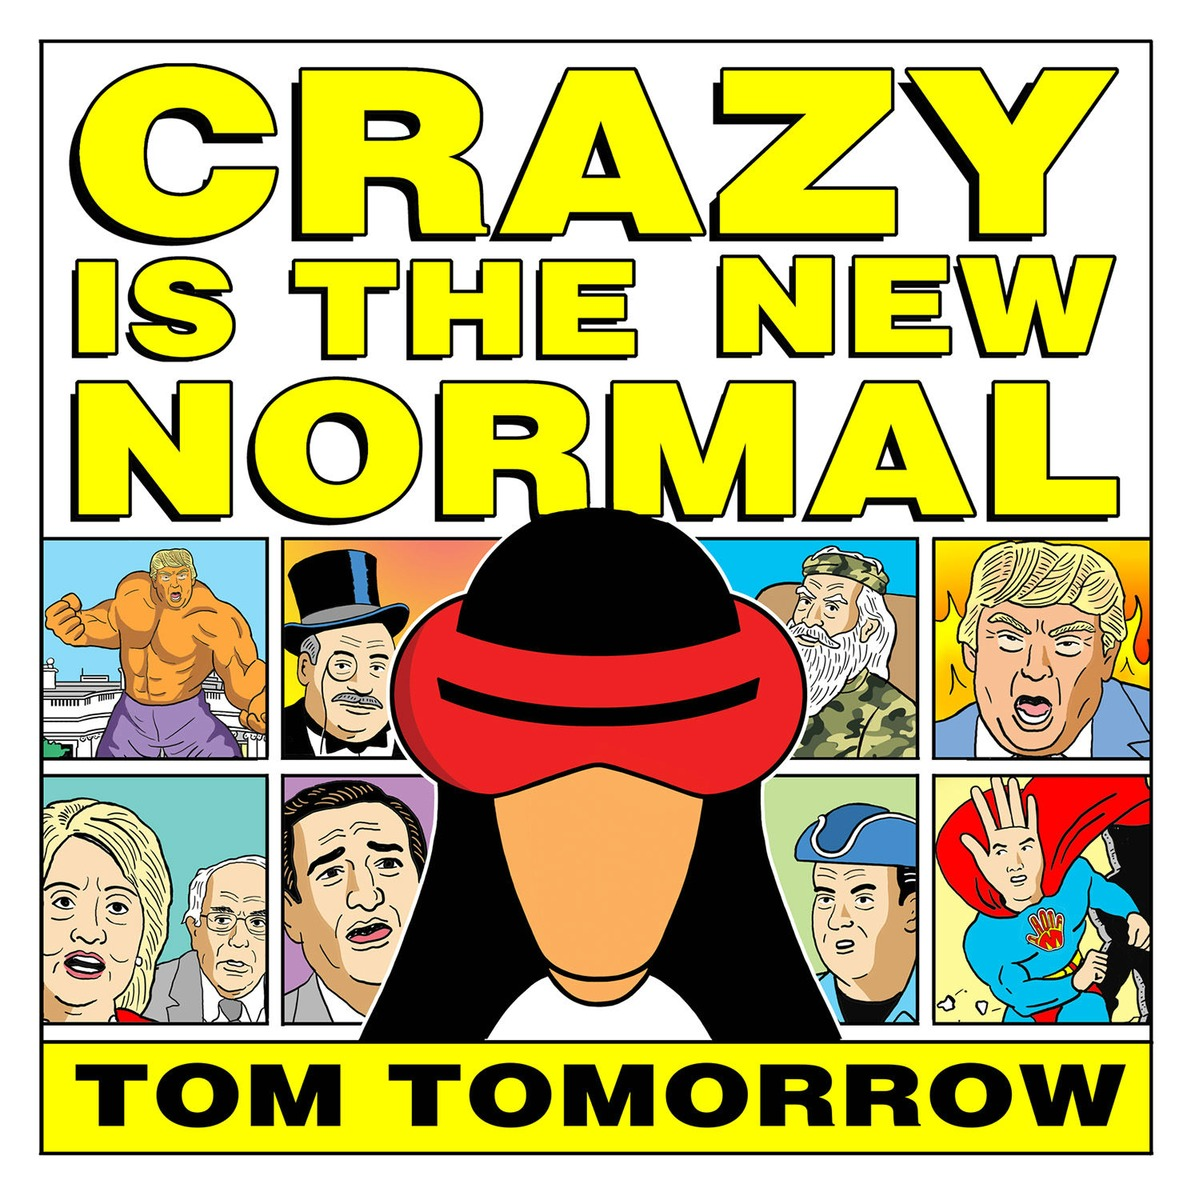 Crazy Is The New Normal family caregiving in the new normal